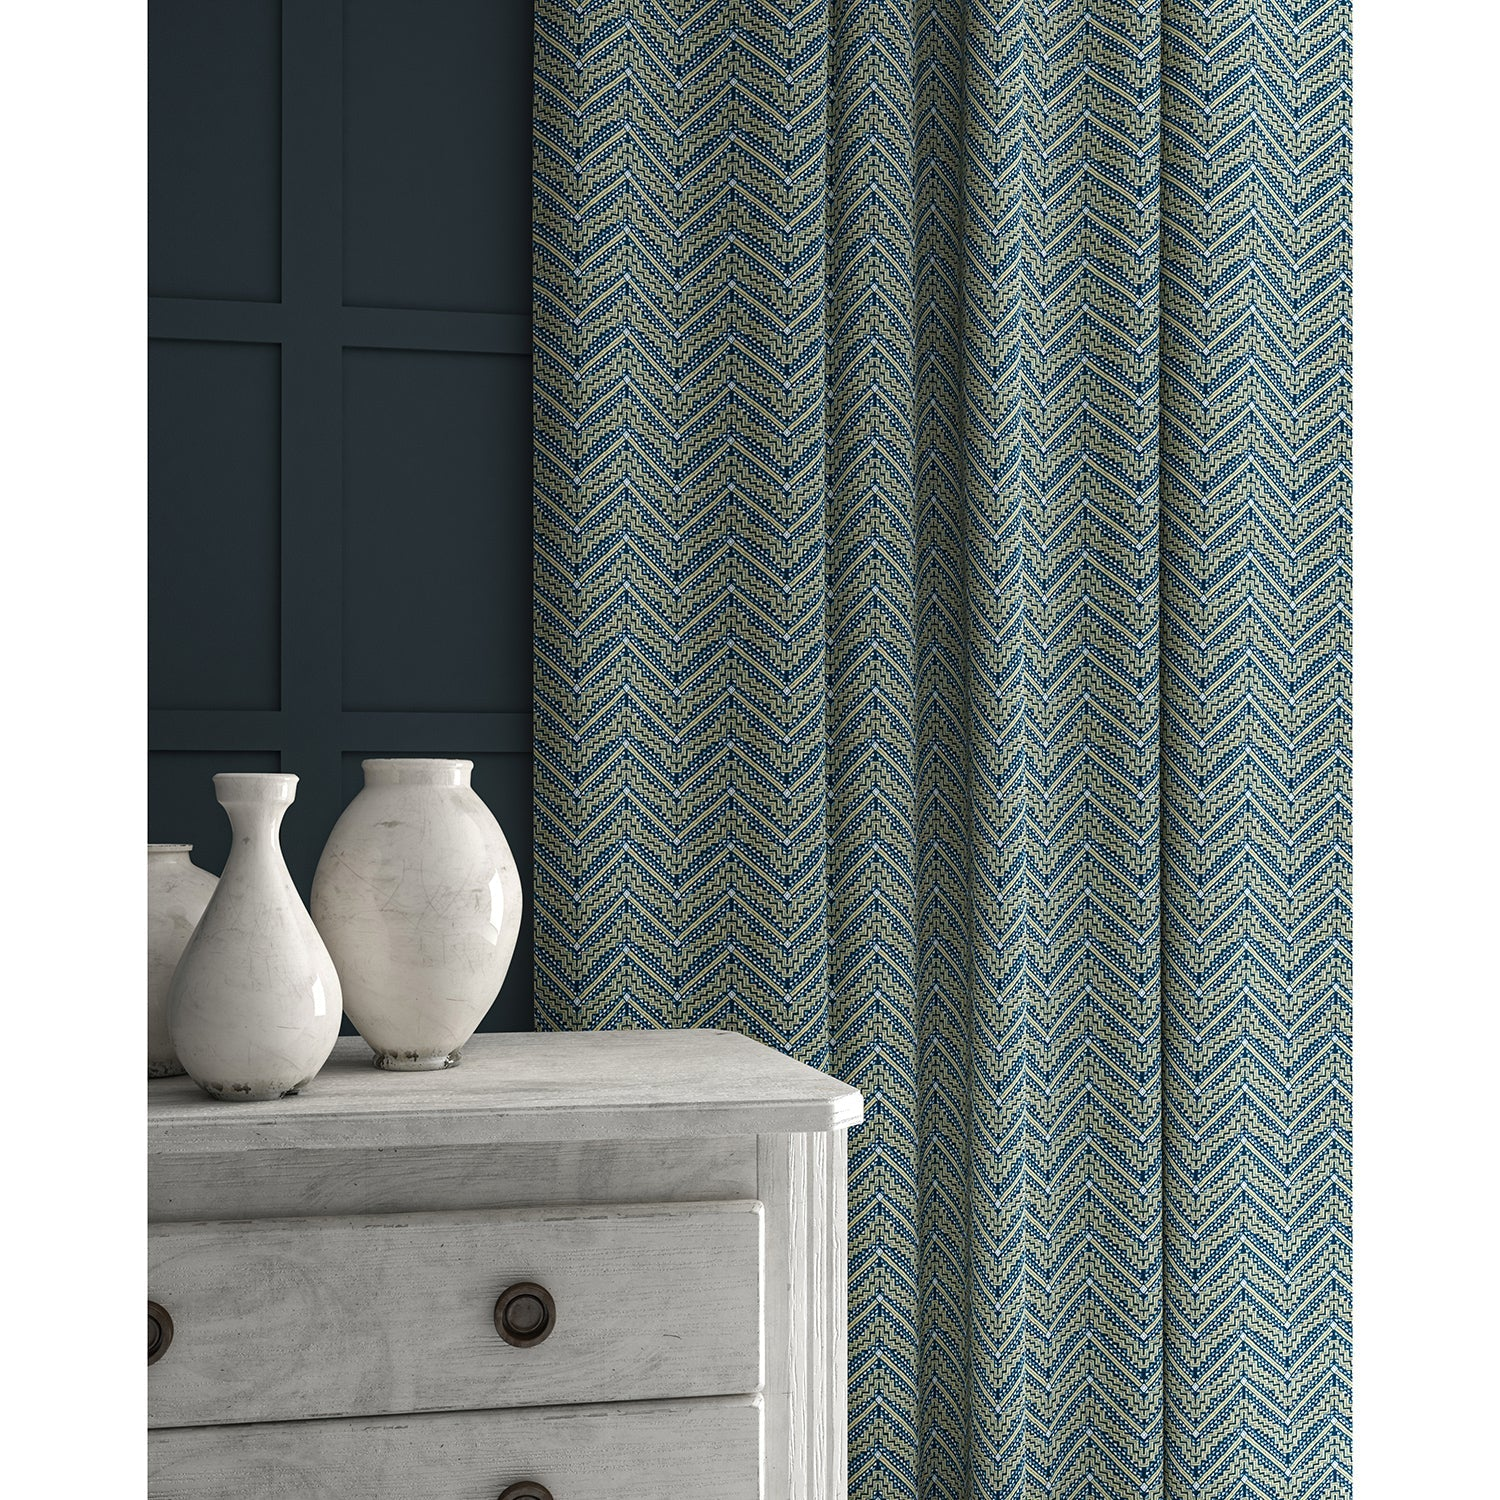 Curtains in a dark blue coloured zig zag geometric weave fabric